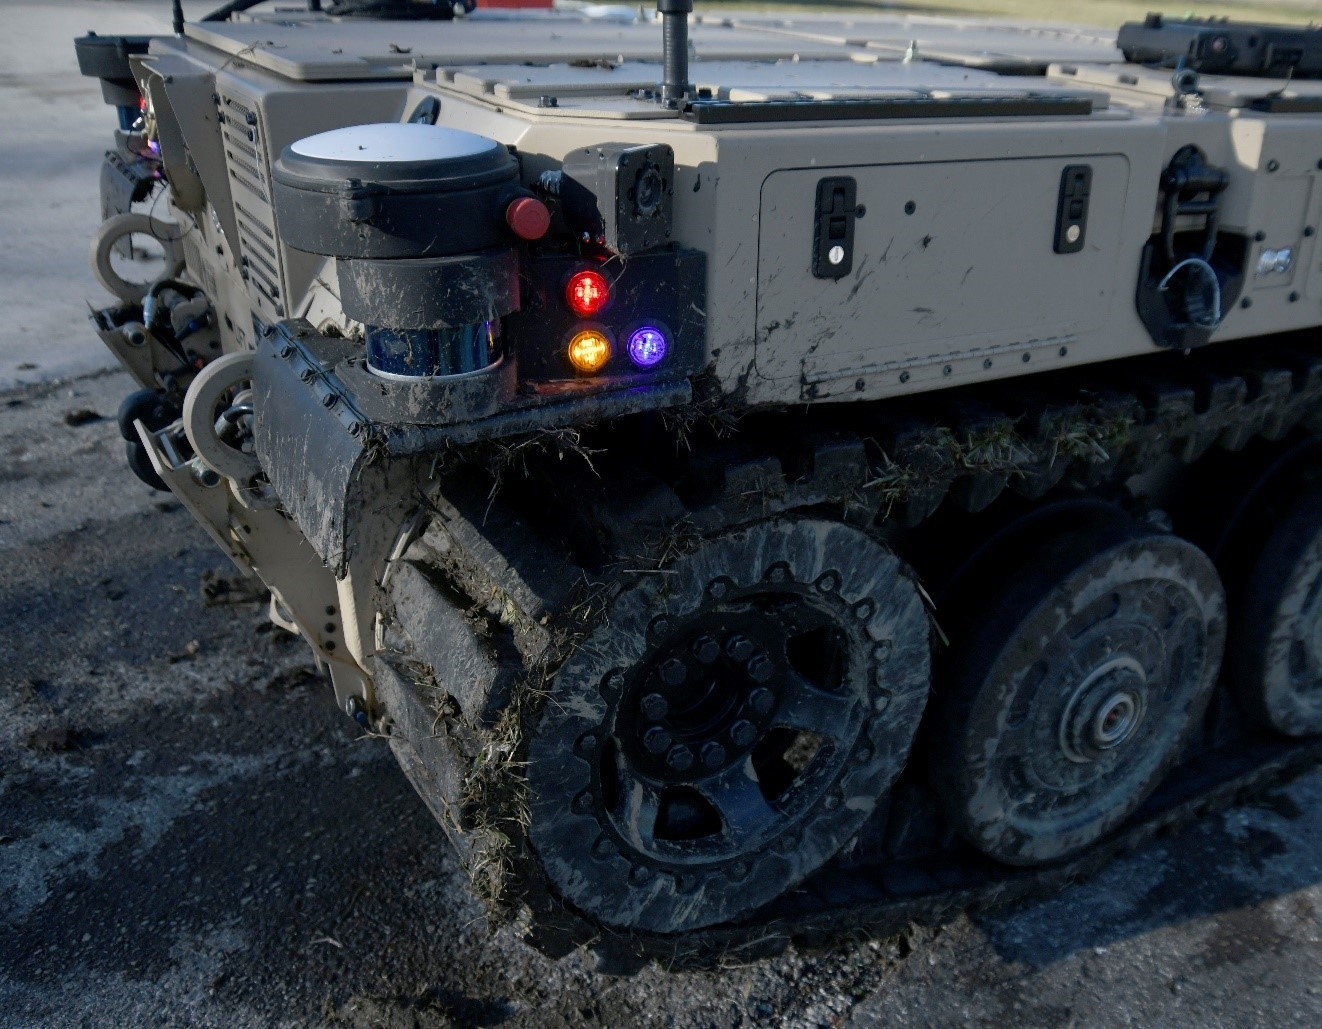 2021-02-06 10:01:52 | U.S. Army engineers to conduct maneuver testing on the RCV-L prototypes